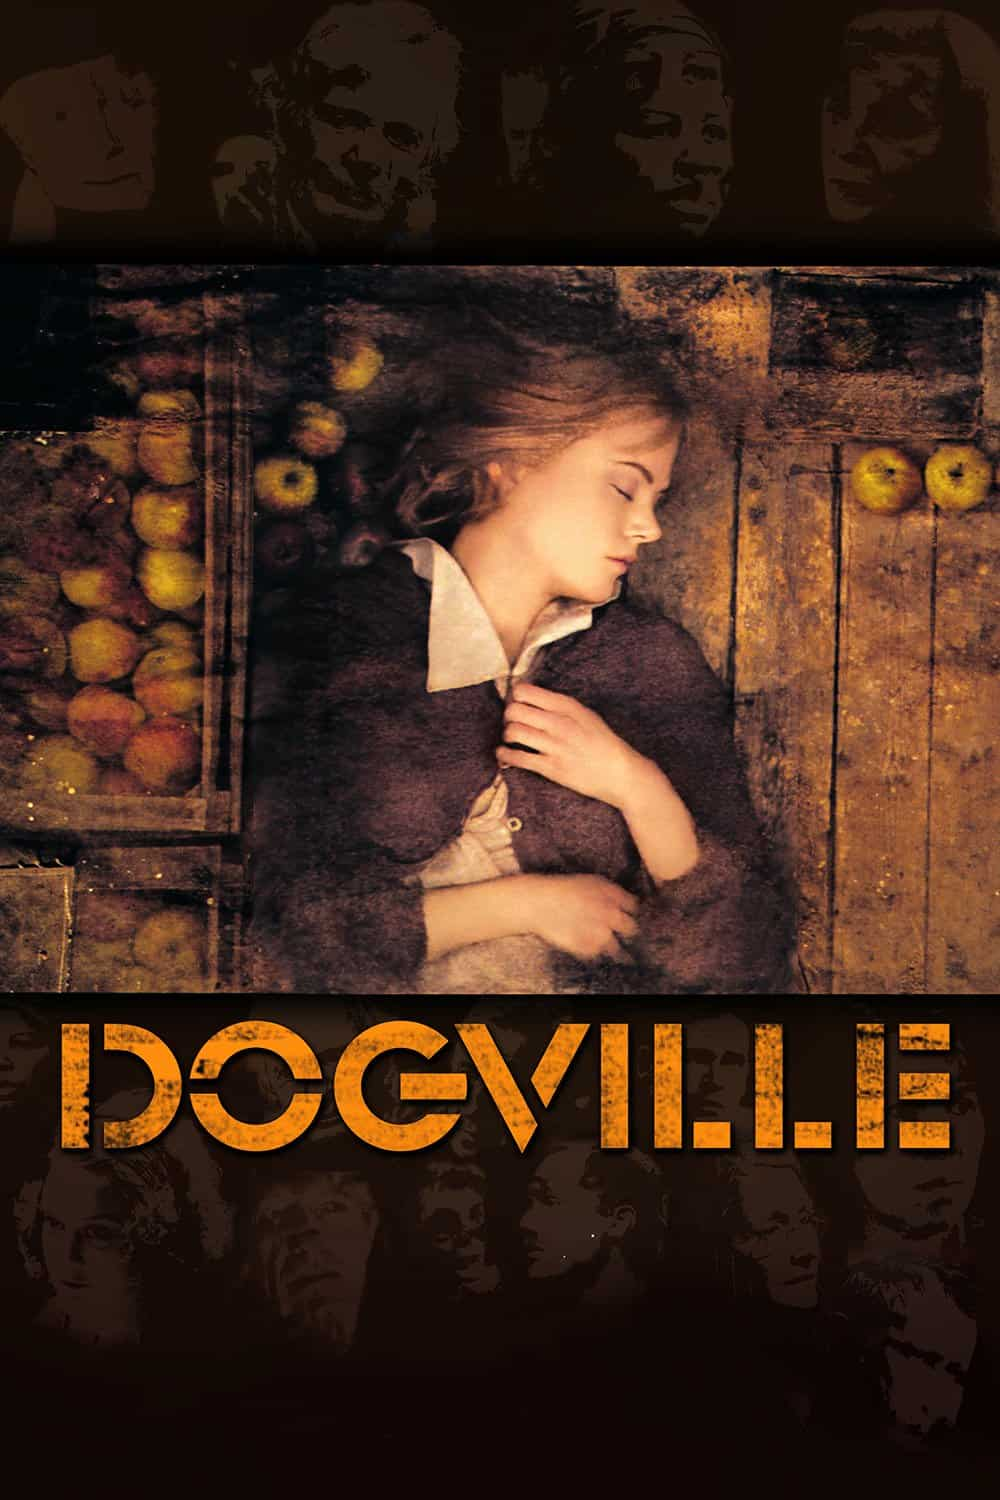 Dogville, 2003